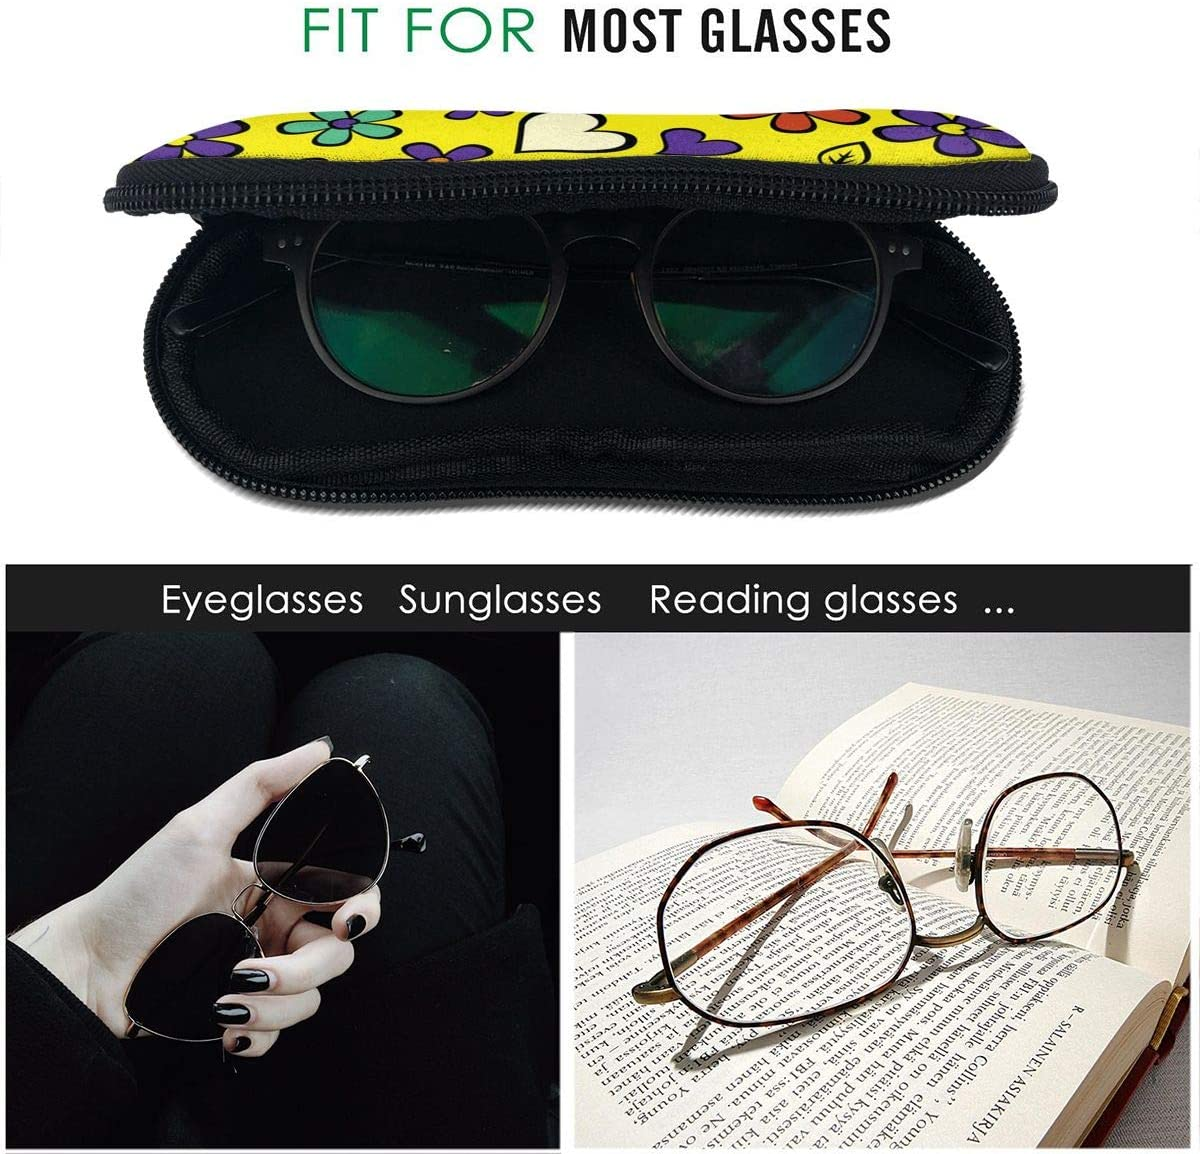 Cartoon Seamless Texture with Heart Mens and Womens Personality Fashion Durable Portable Glasses Case 3.1 X 6.1 Inch Sunglasses Eyeglasses Case Zipper Hard Shell Glasses Box with Hook